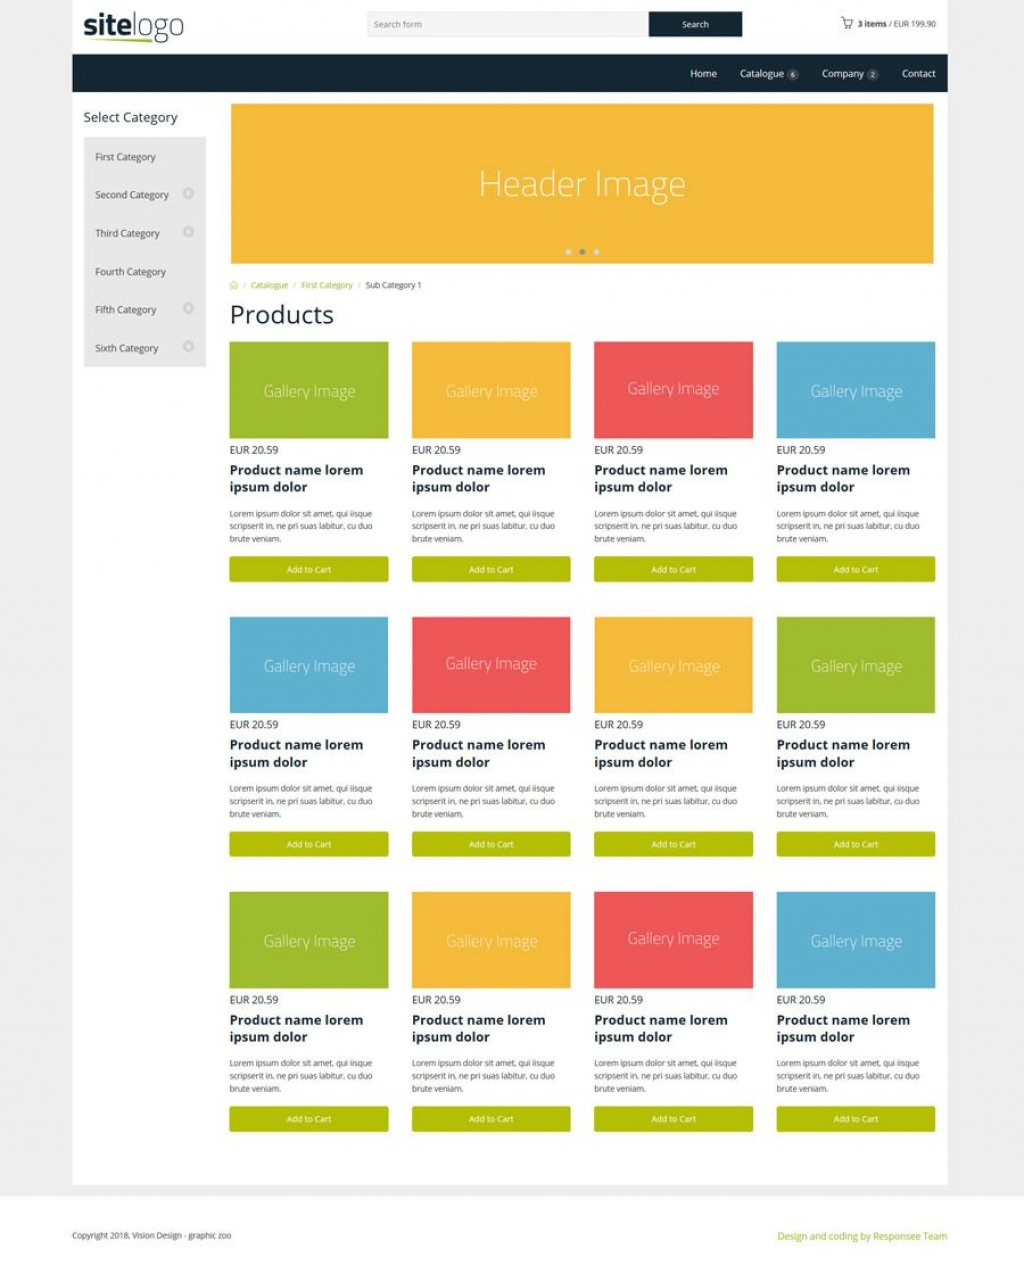 004 Surprising Free Website Template Dreamweaver Image  Ecommerce Download Construction HtmlLarge